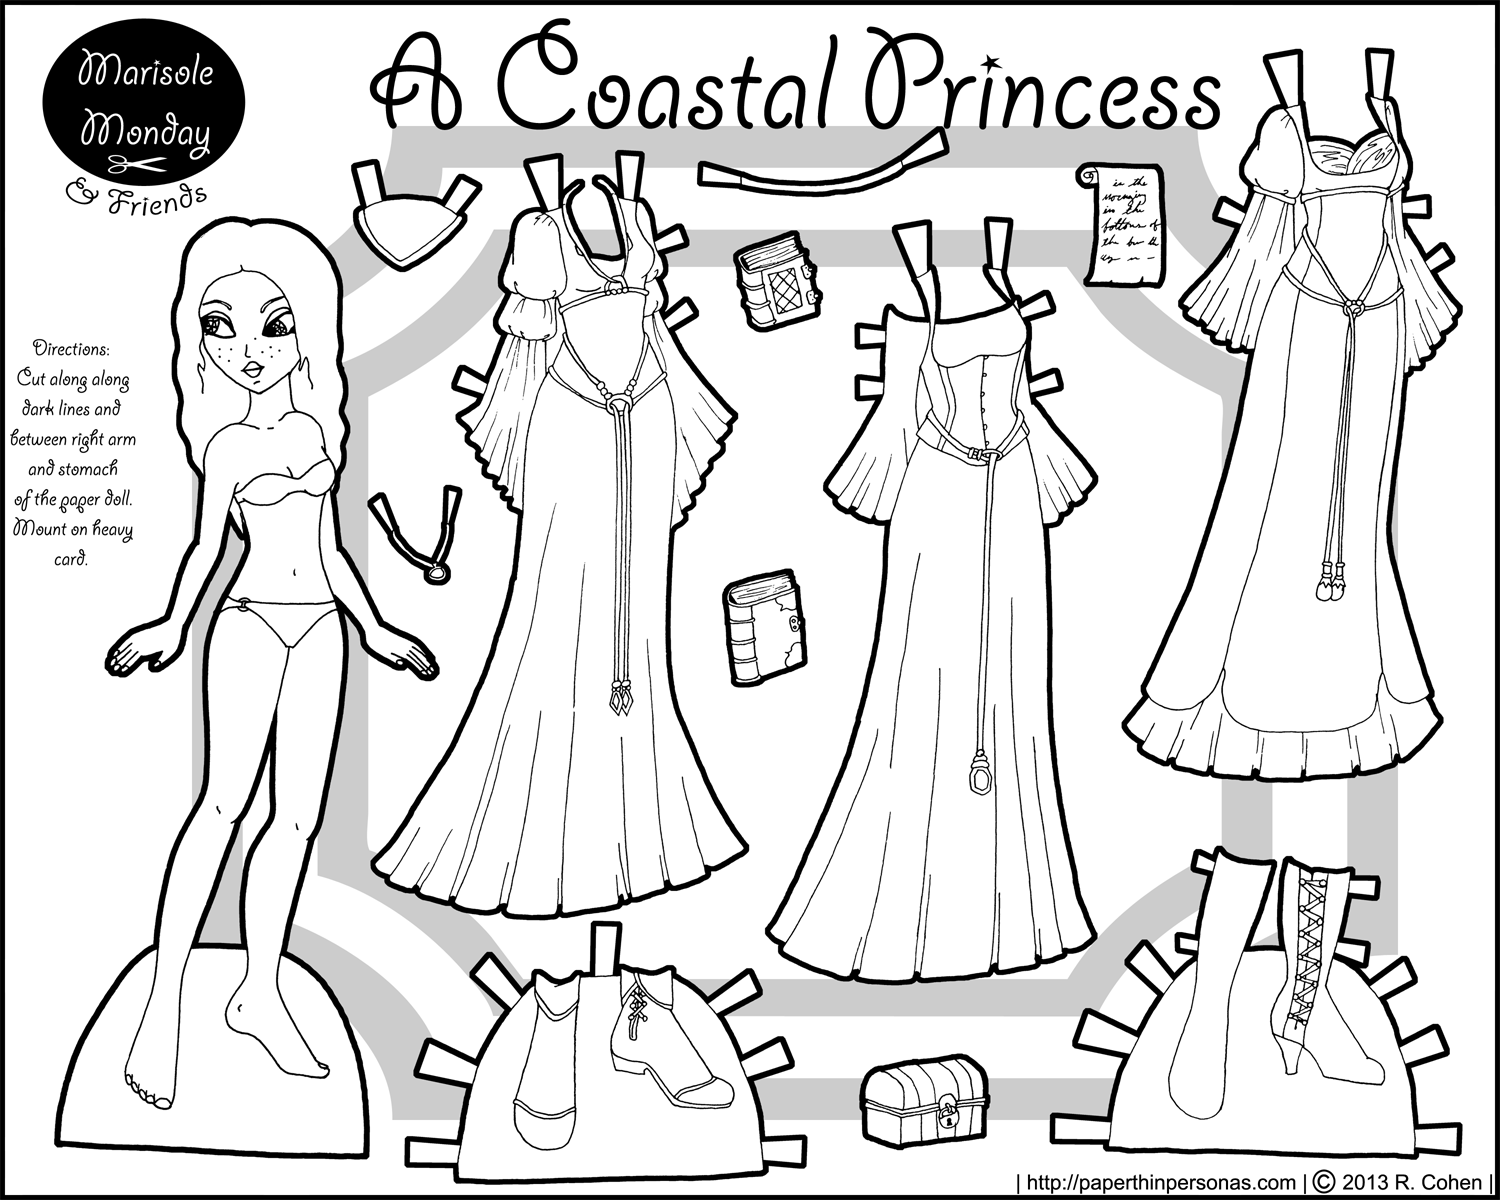 Uncategorized Paper Doll Coloring Page marisole monday coastal princess dolls printable paper and cartoon costumesprintable papercoloring bookscoloring